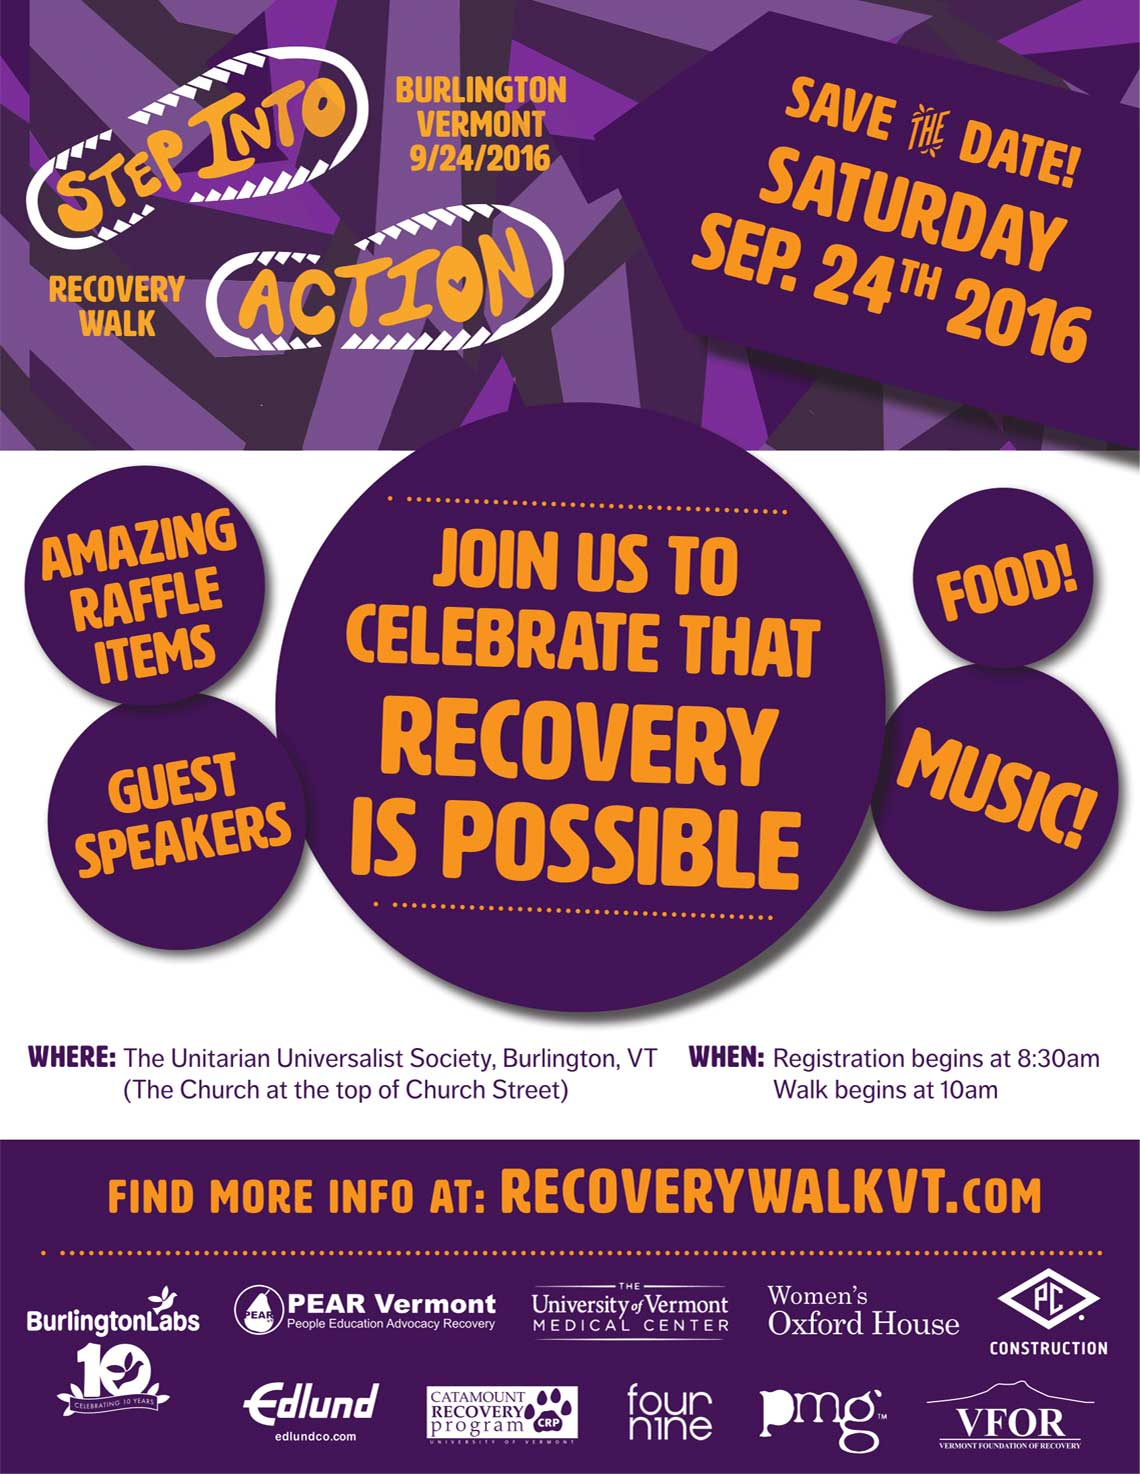 Recovery Walk in Burlington